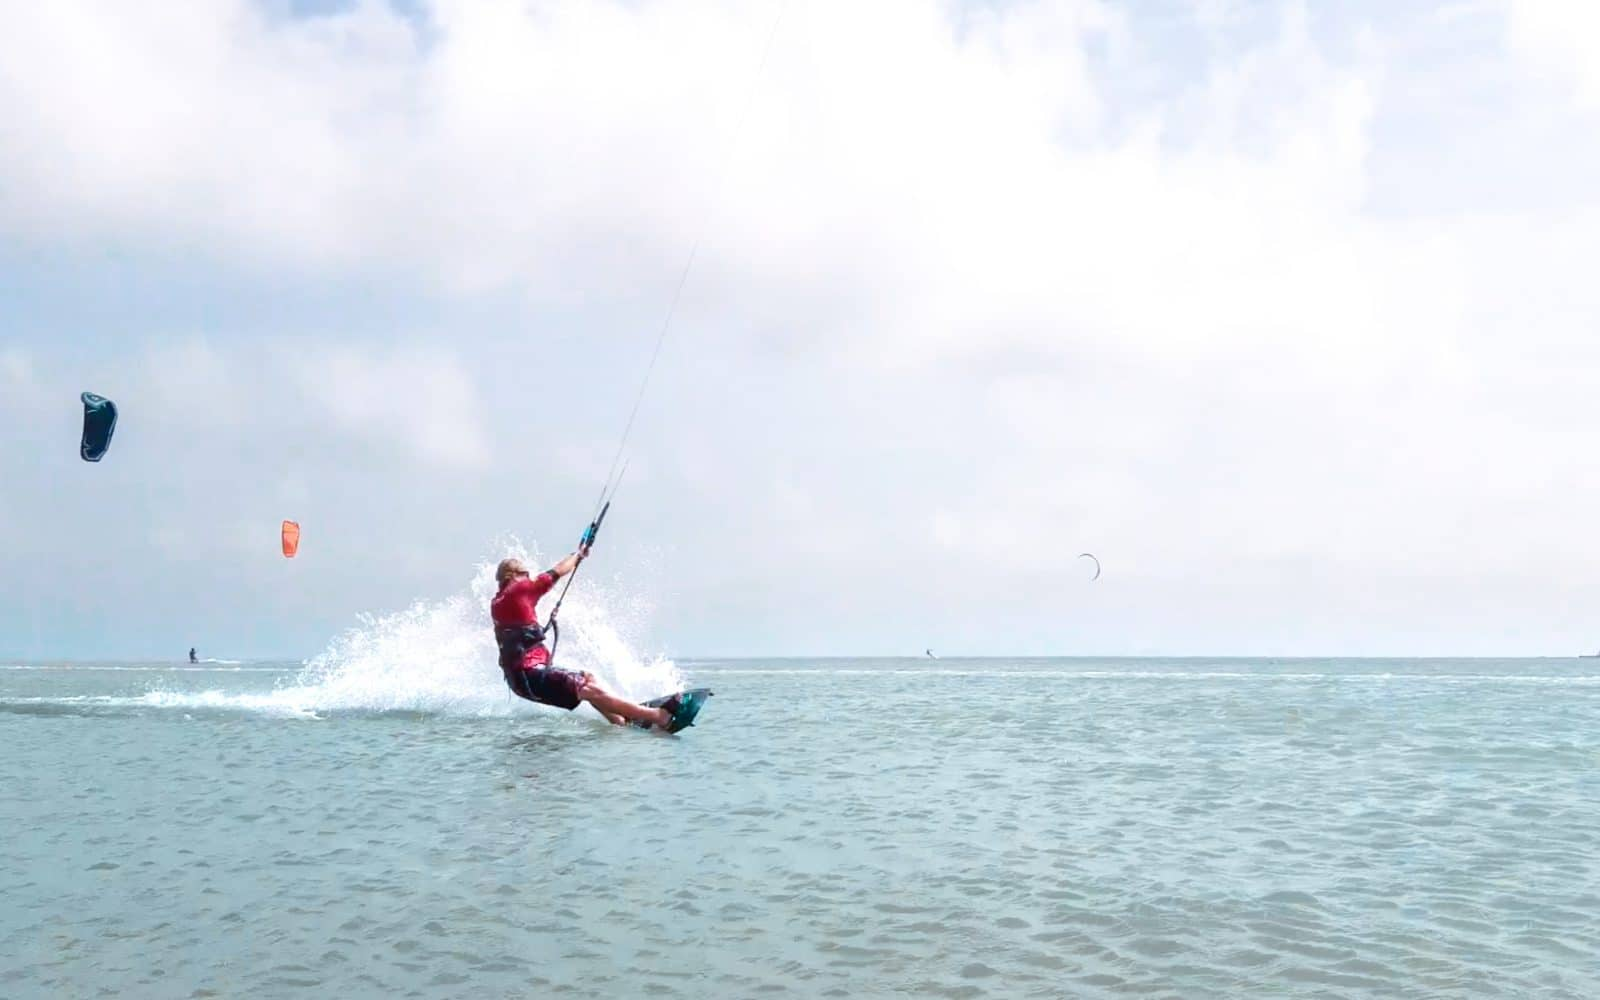 Inverted front roll - a step by step guide to mastering this kitesurfing trick 2